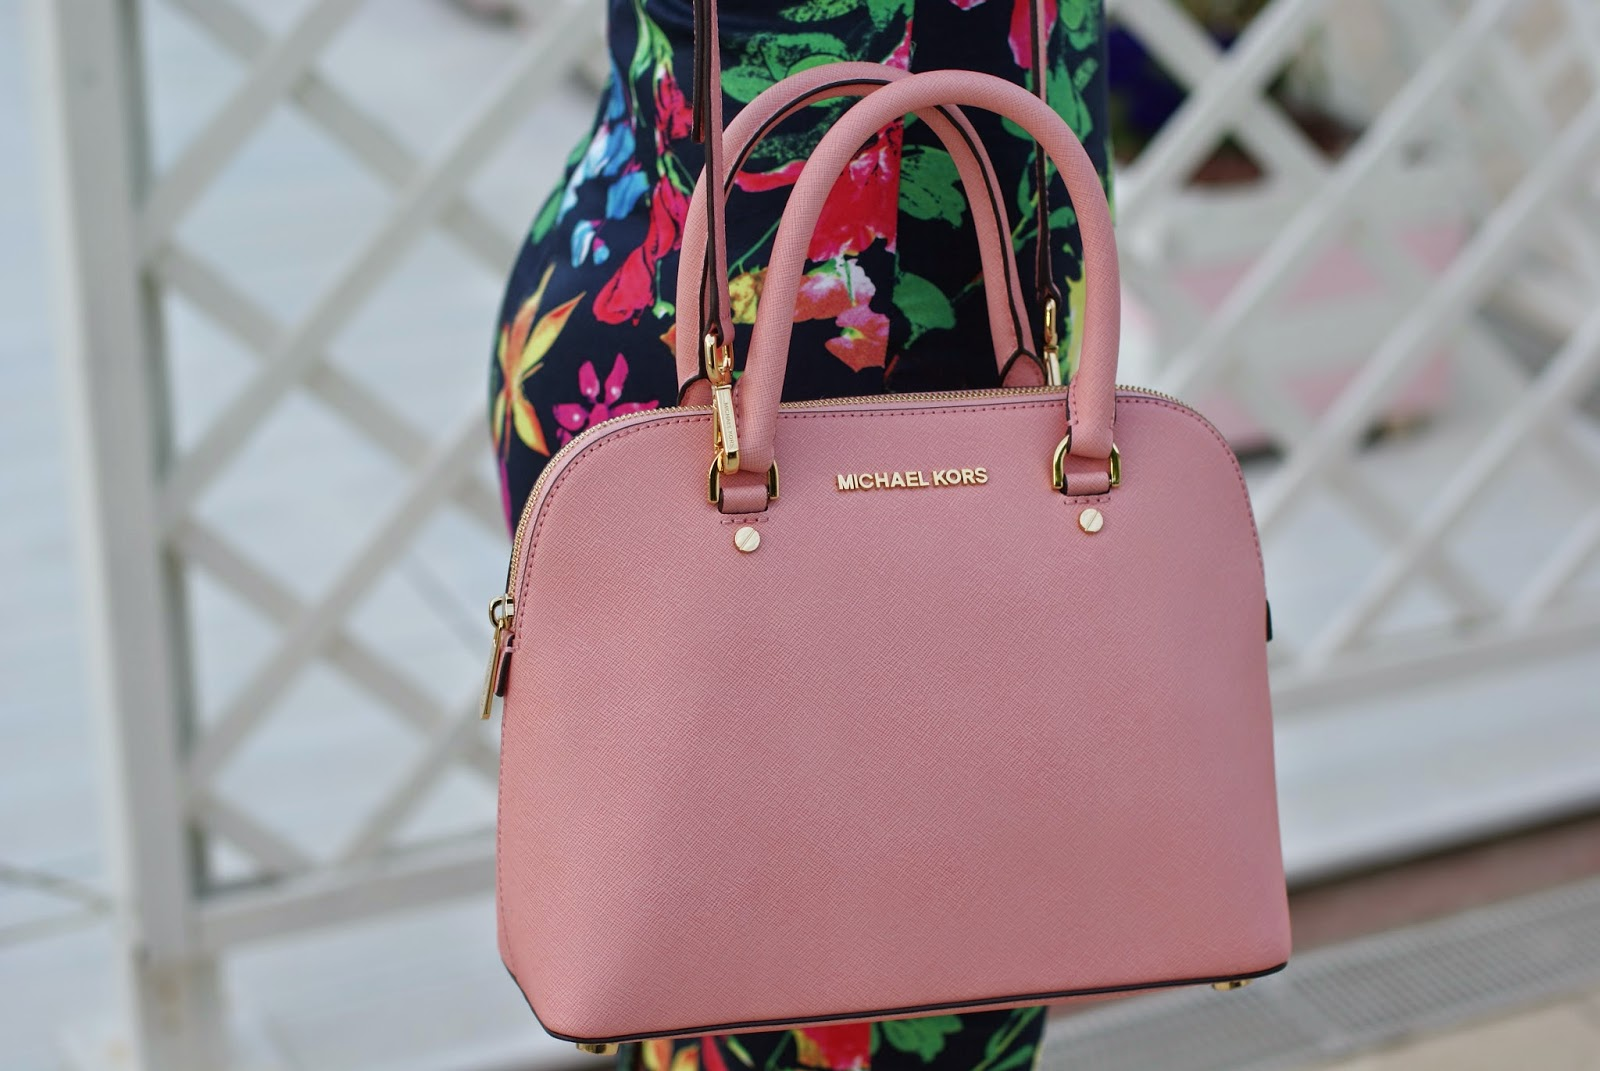 Michael Kors saffiano leather bag, Michael Kors Cindy medium pink bag, Fashion and Cookies fashion blog